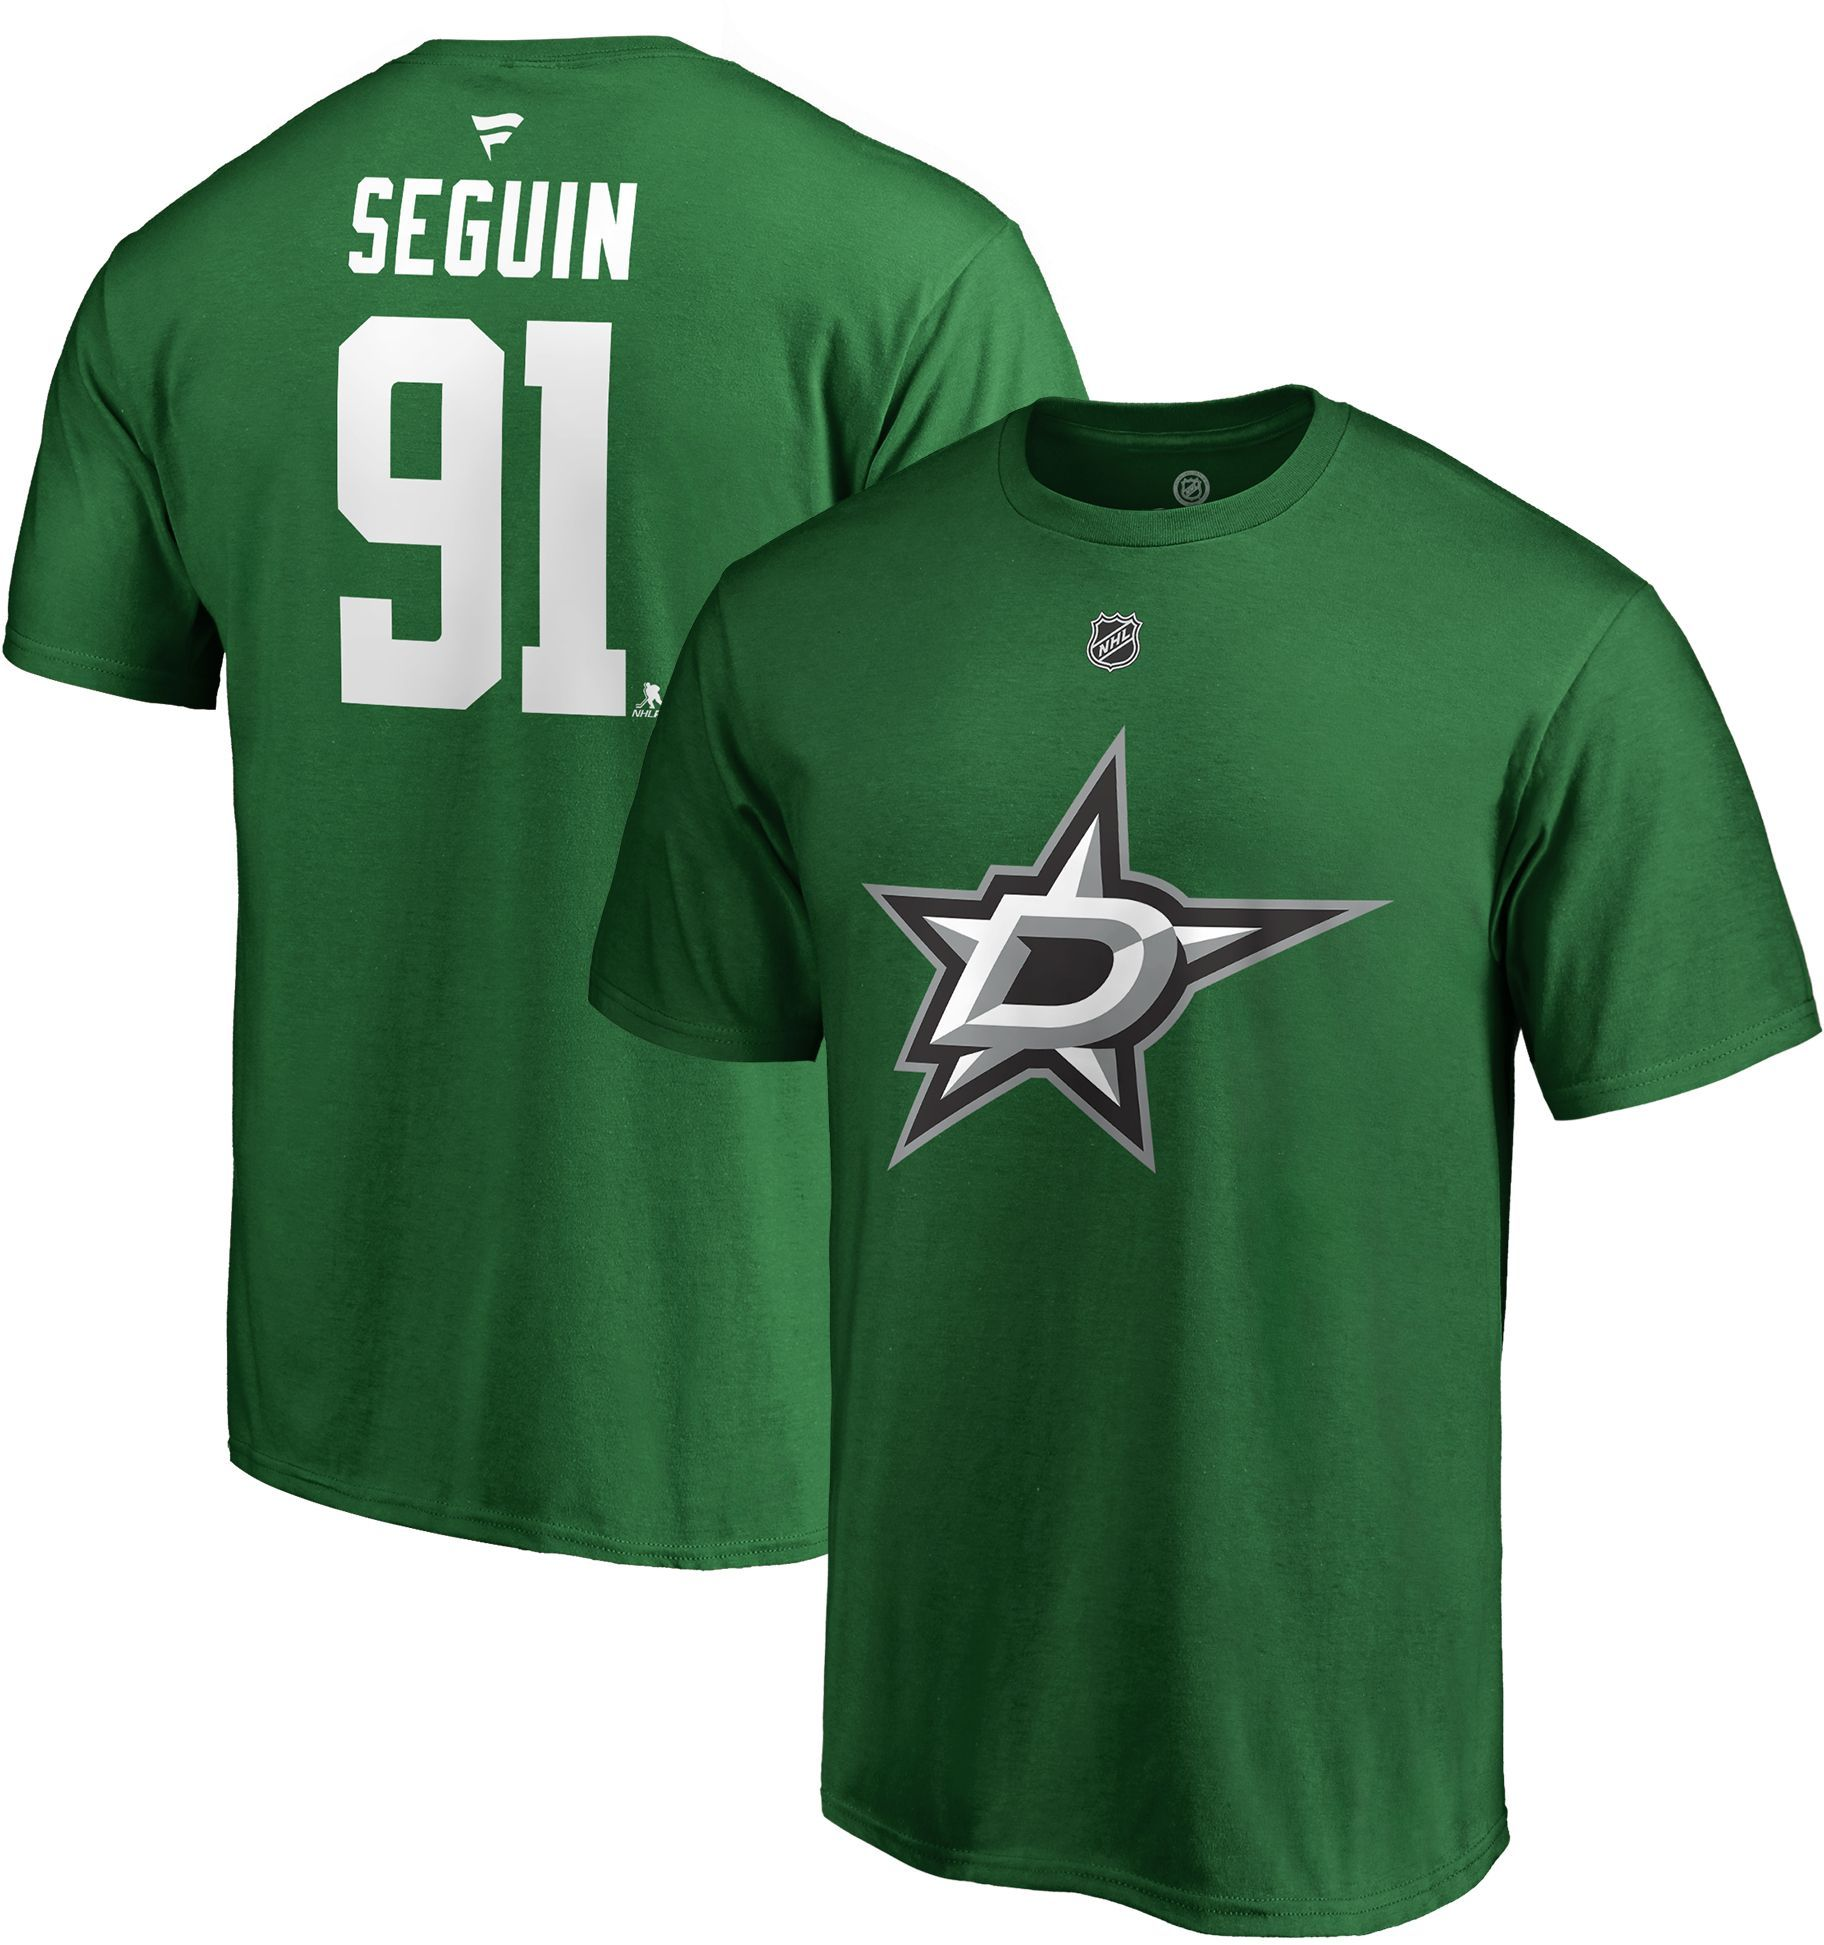 separation shoes 491a0 6e1eb NHL Men's Dallas Stars Tyler Seguin #91 Green Player T-Shirt ...